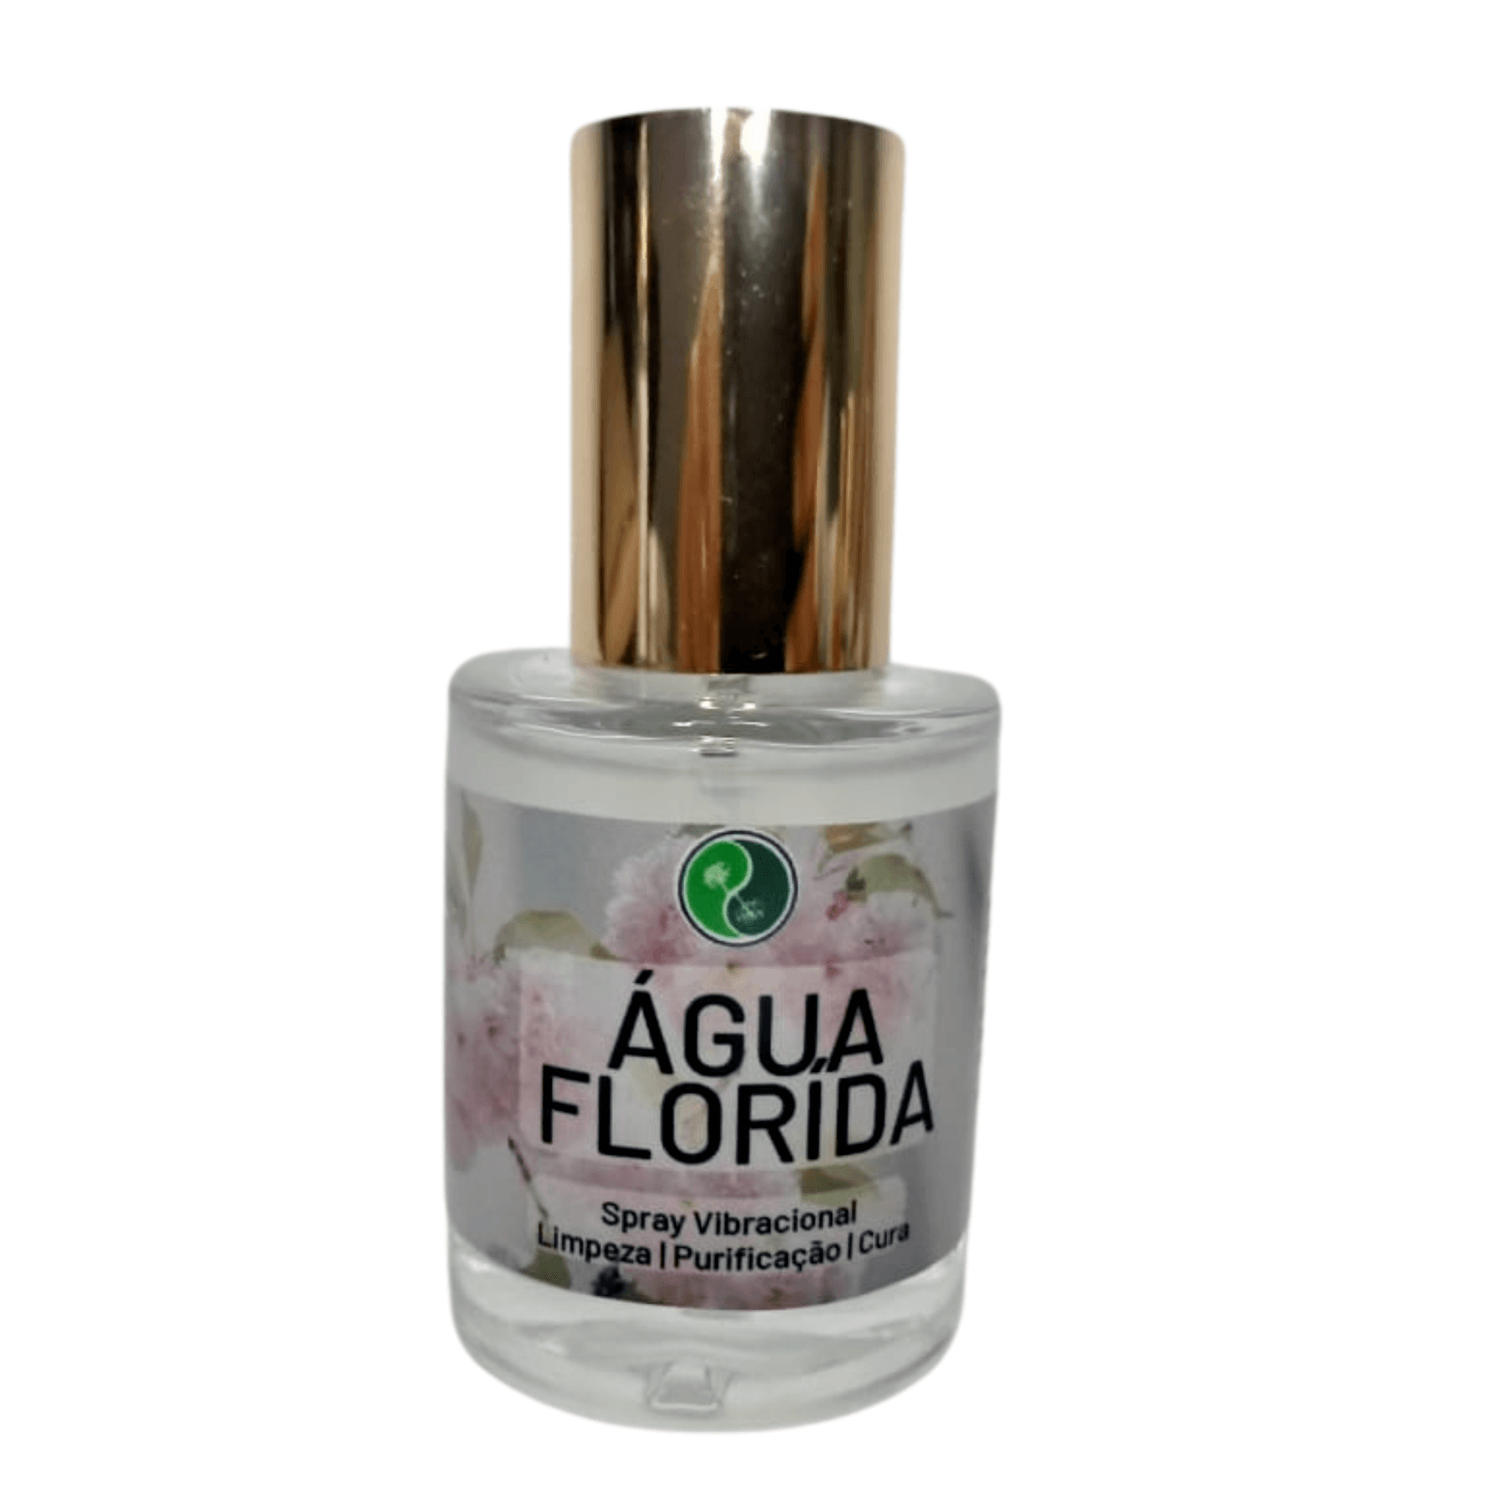 Spray Vibracional Agua Florida